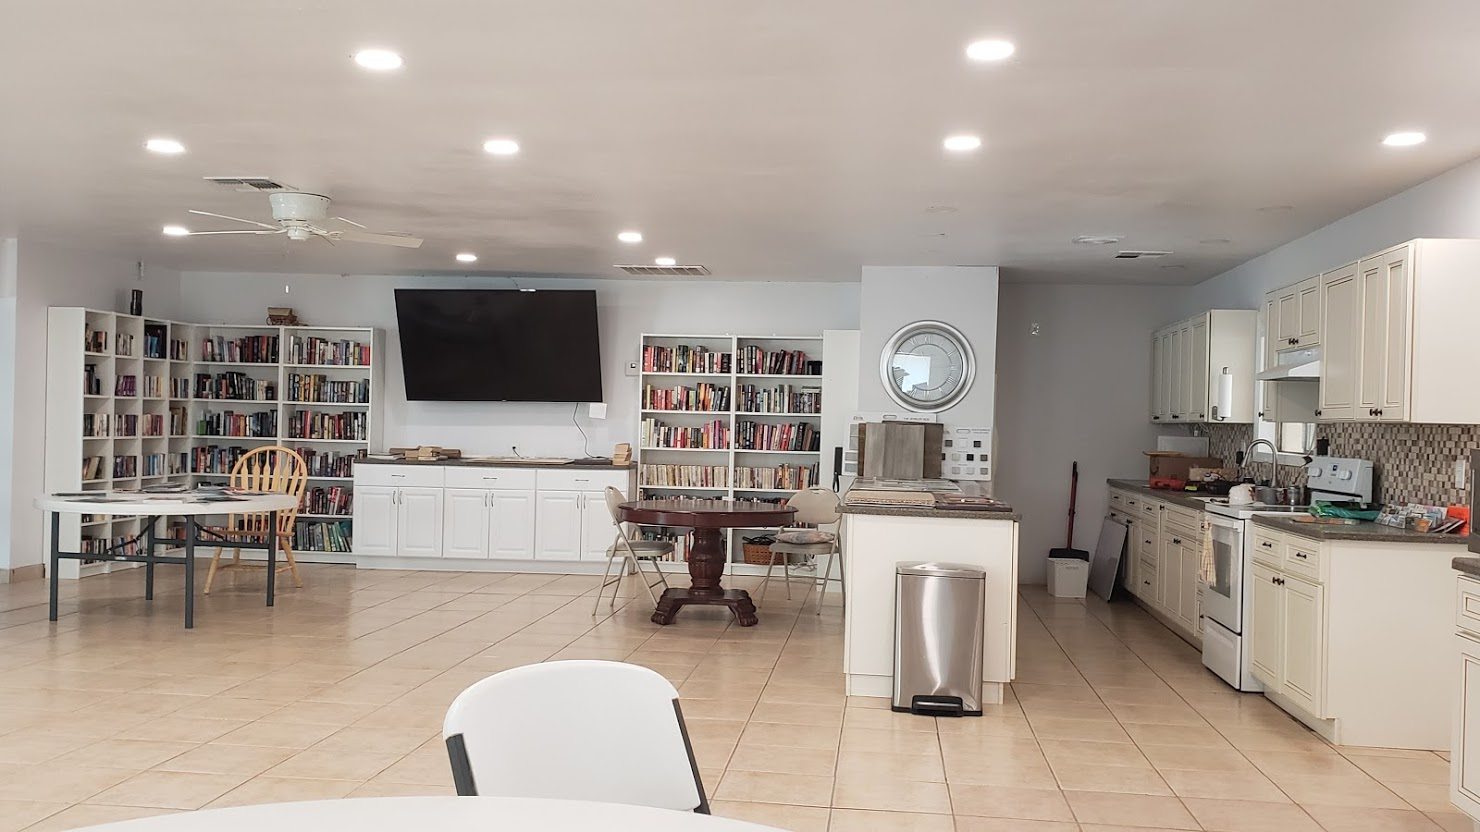 Leisure Valley-kitchen and library-game room